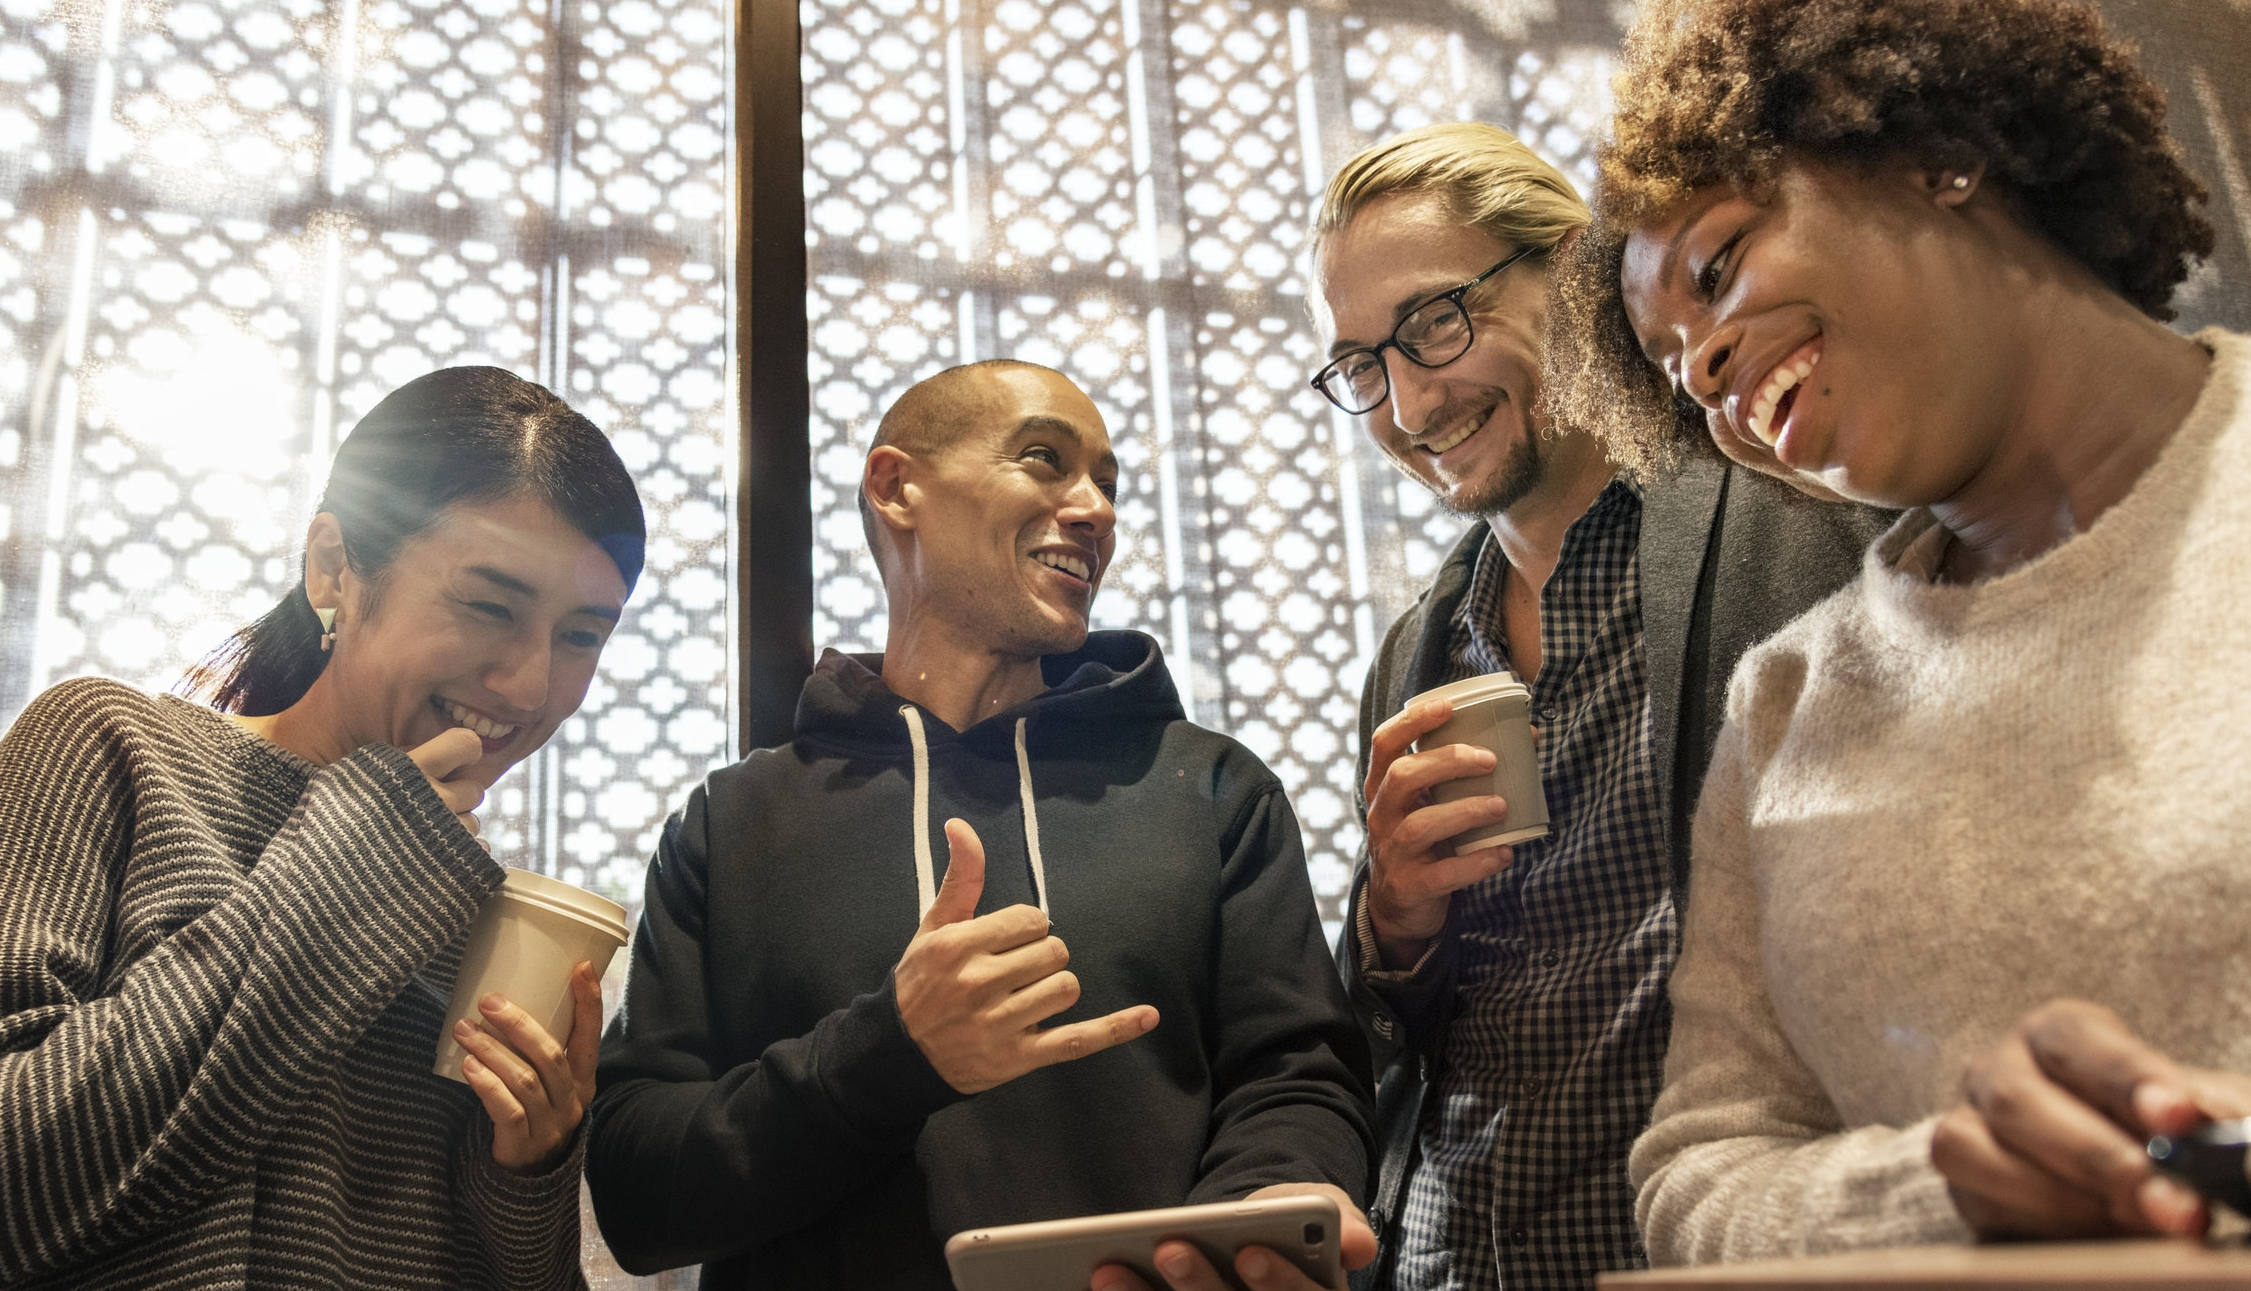 Explore and Network - Each week, you'll attend a professional or cultural event with your cohort and city manager. Events can range from panel discussions or company visits to pitch events. We also organize social events.